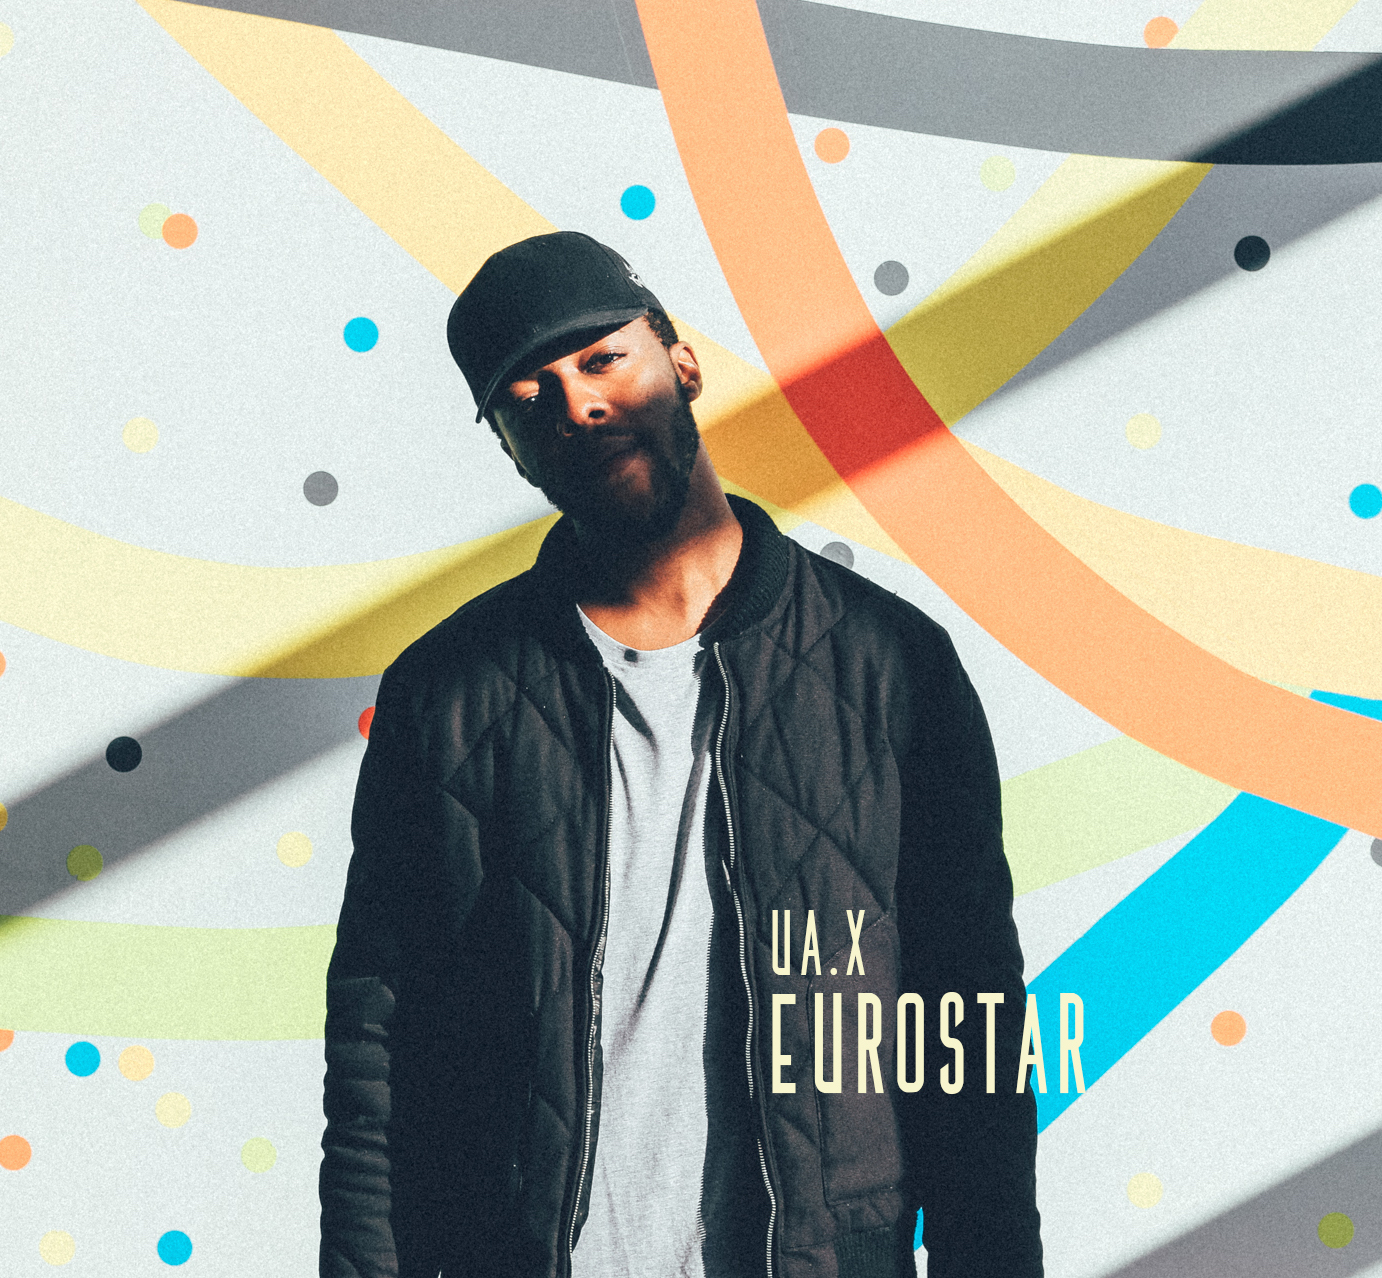 """NEW MUSIC: Shay AU (@TheUAx_) releases debut self produced song """"EUROSTAR"""""""